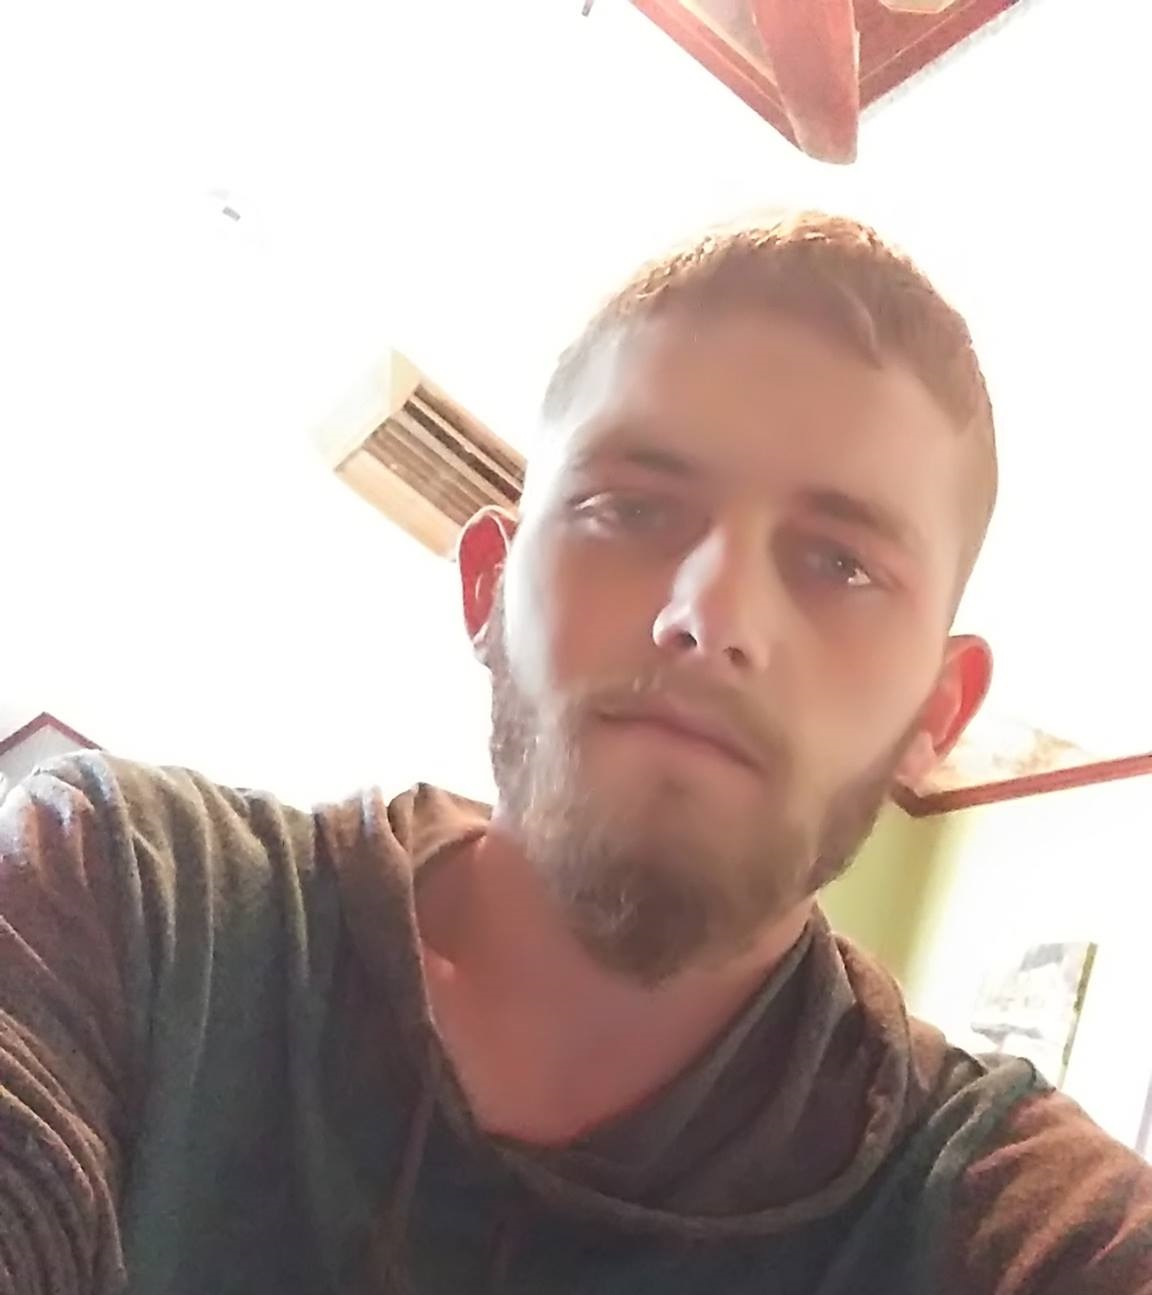 Police Searching For Central Arkansas Man Wanted For Battery Against A Toddler thumbnail